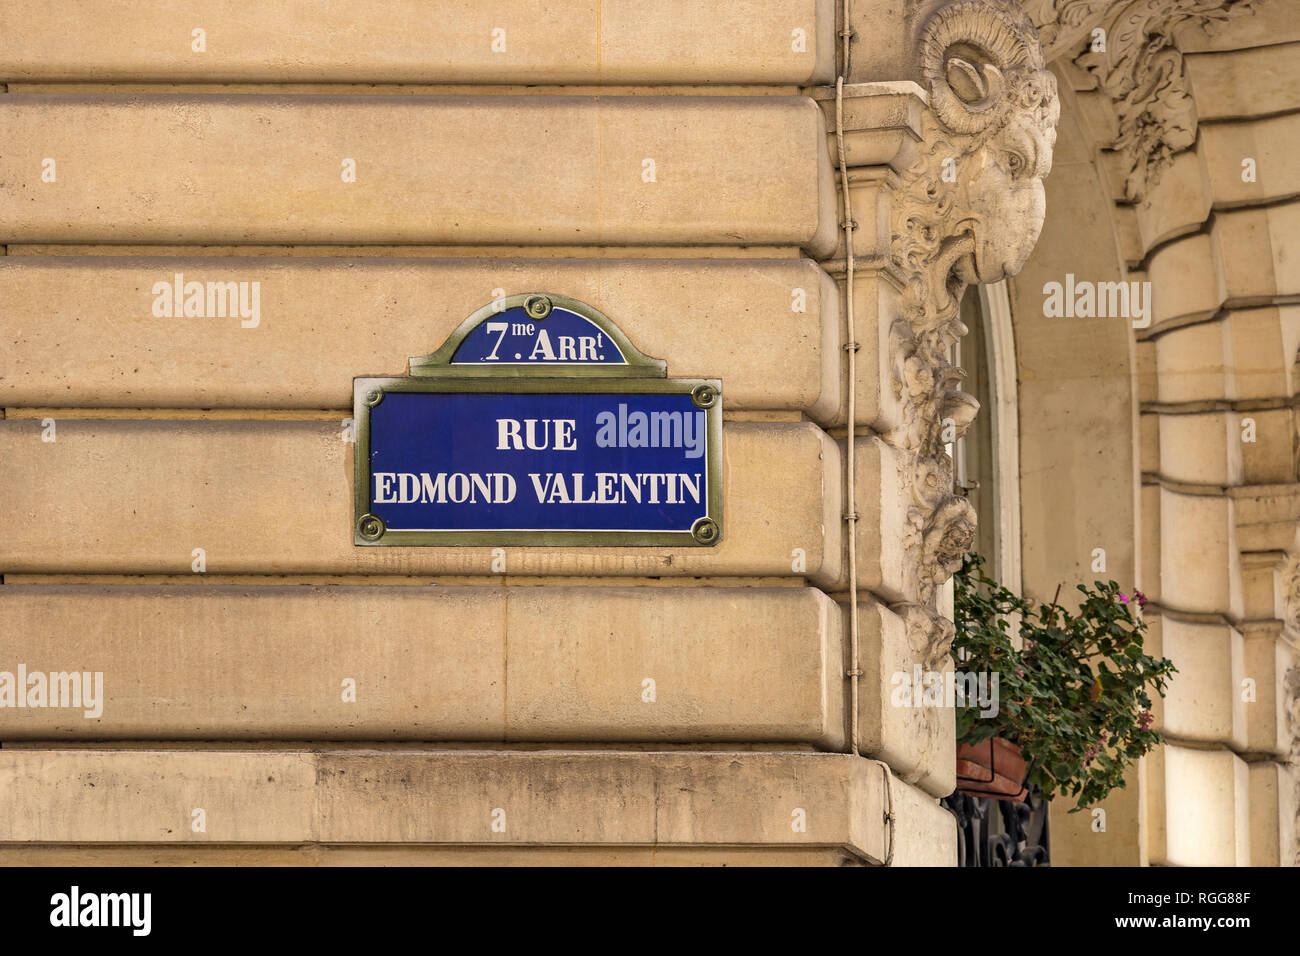 Rue Edmond Valentin Street sign on a stone wall in the 7th arrondissement Paris - Stock Image